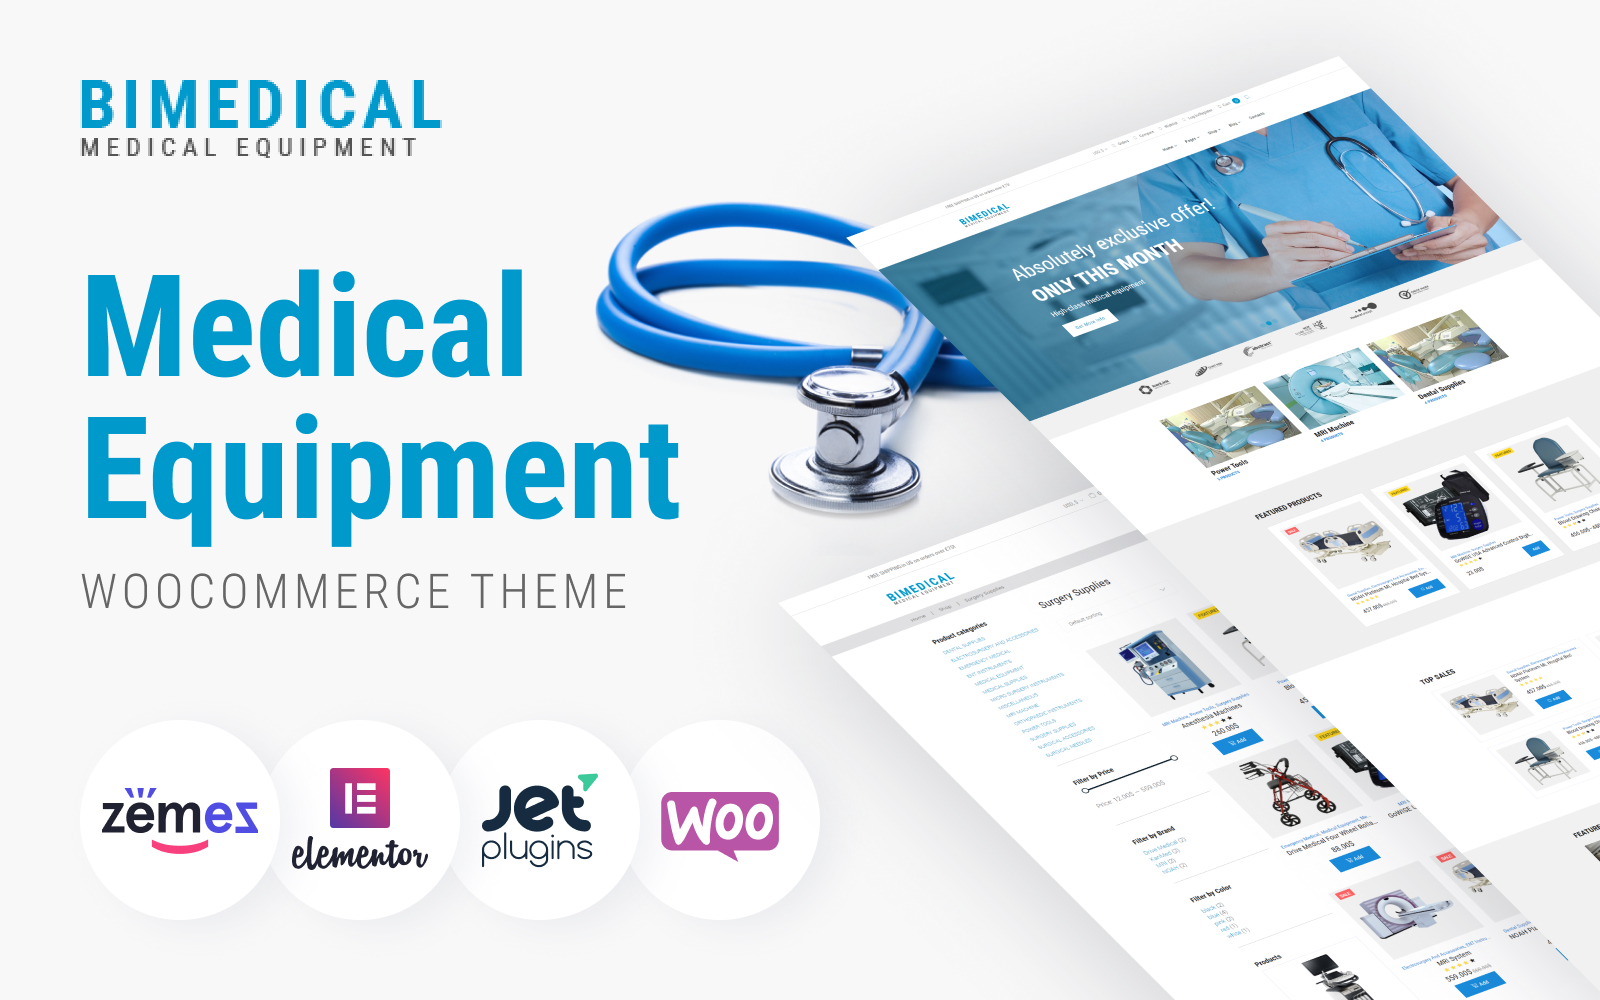 """Bimedical- Medical Equipment Responsive"" thème WooCommerce adaptatif #64363"